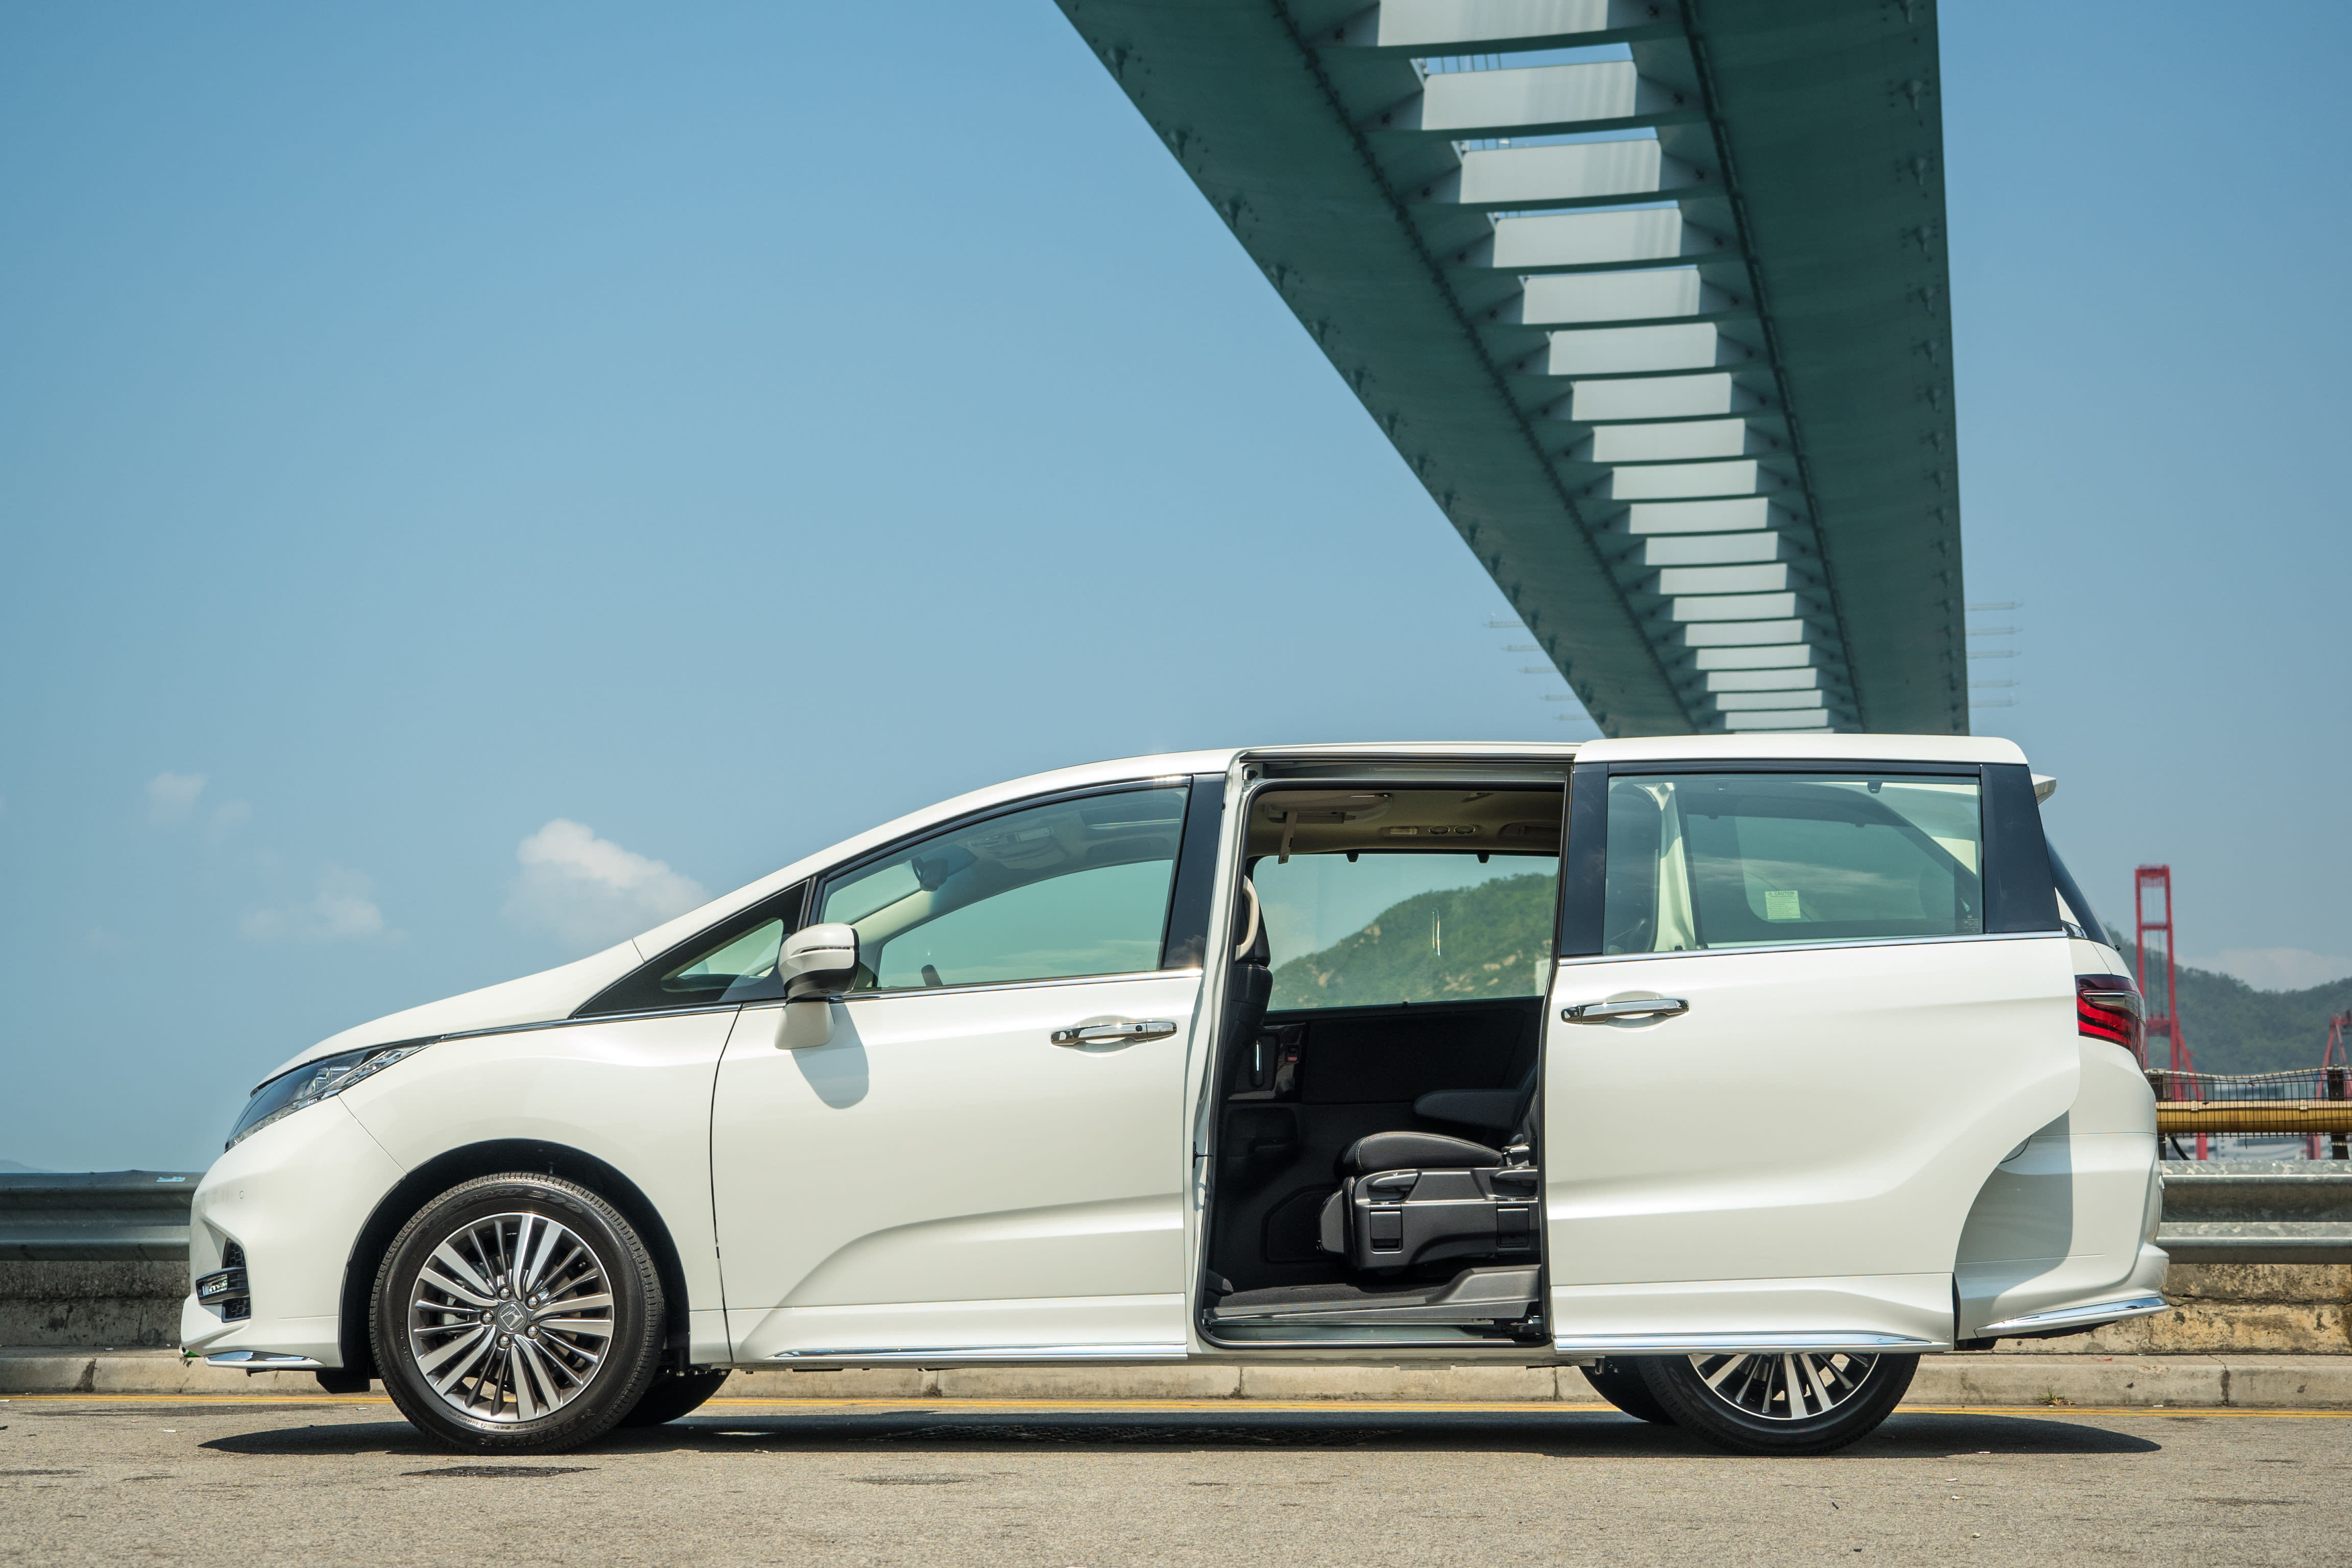 Honda issues a second recall for faulty sliding doors